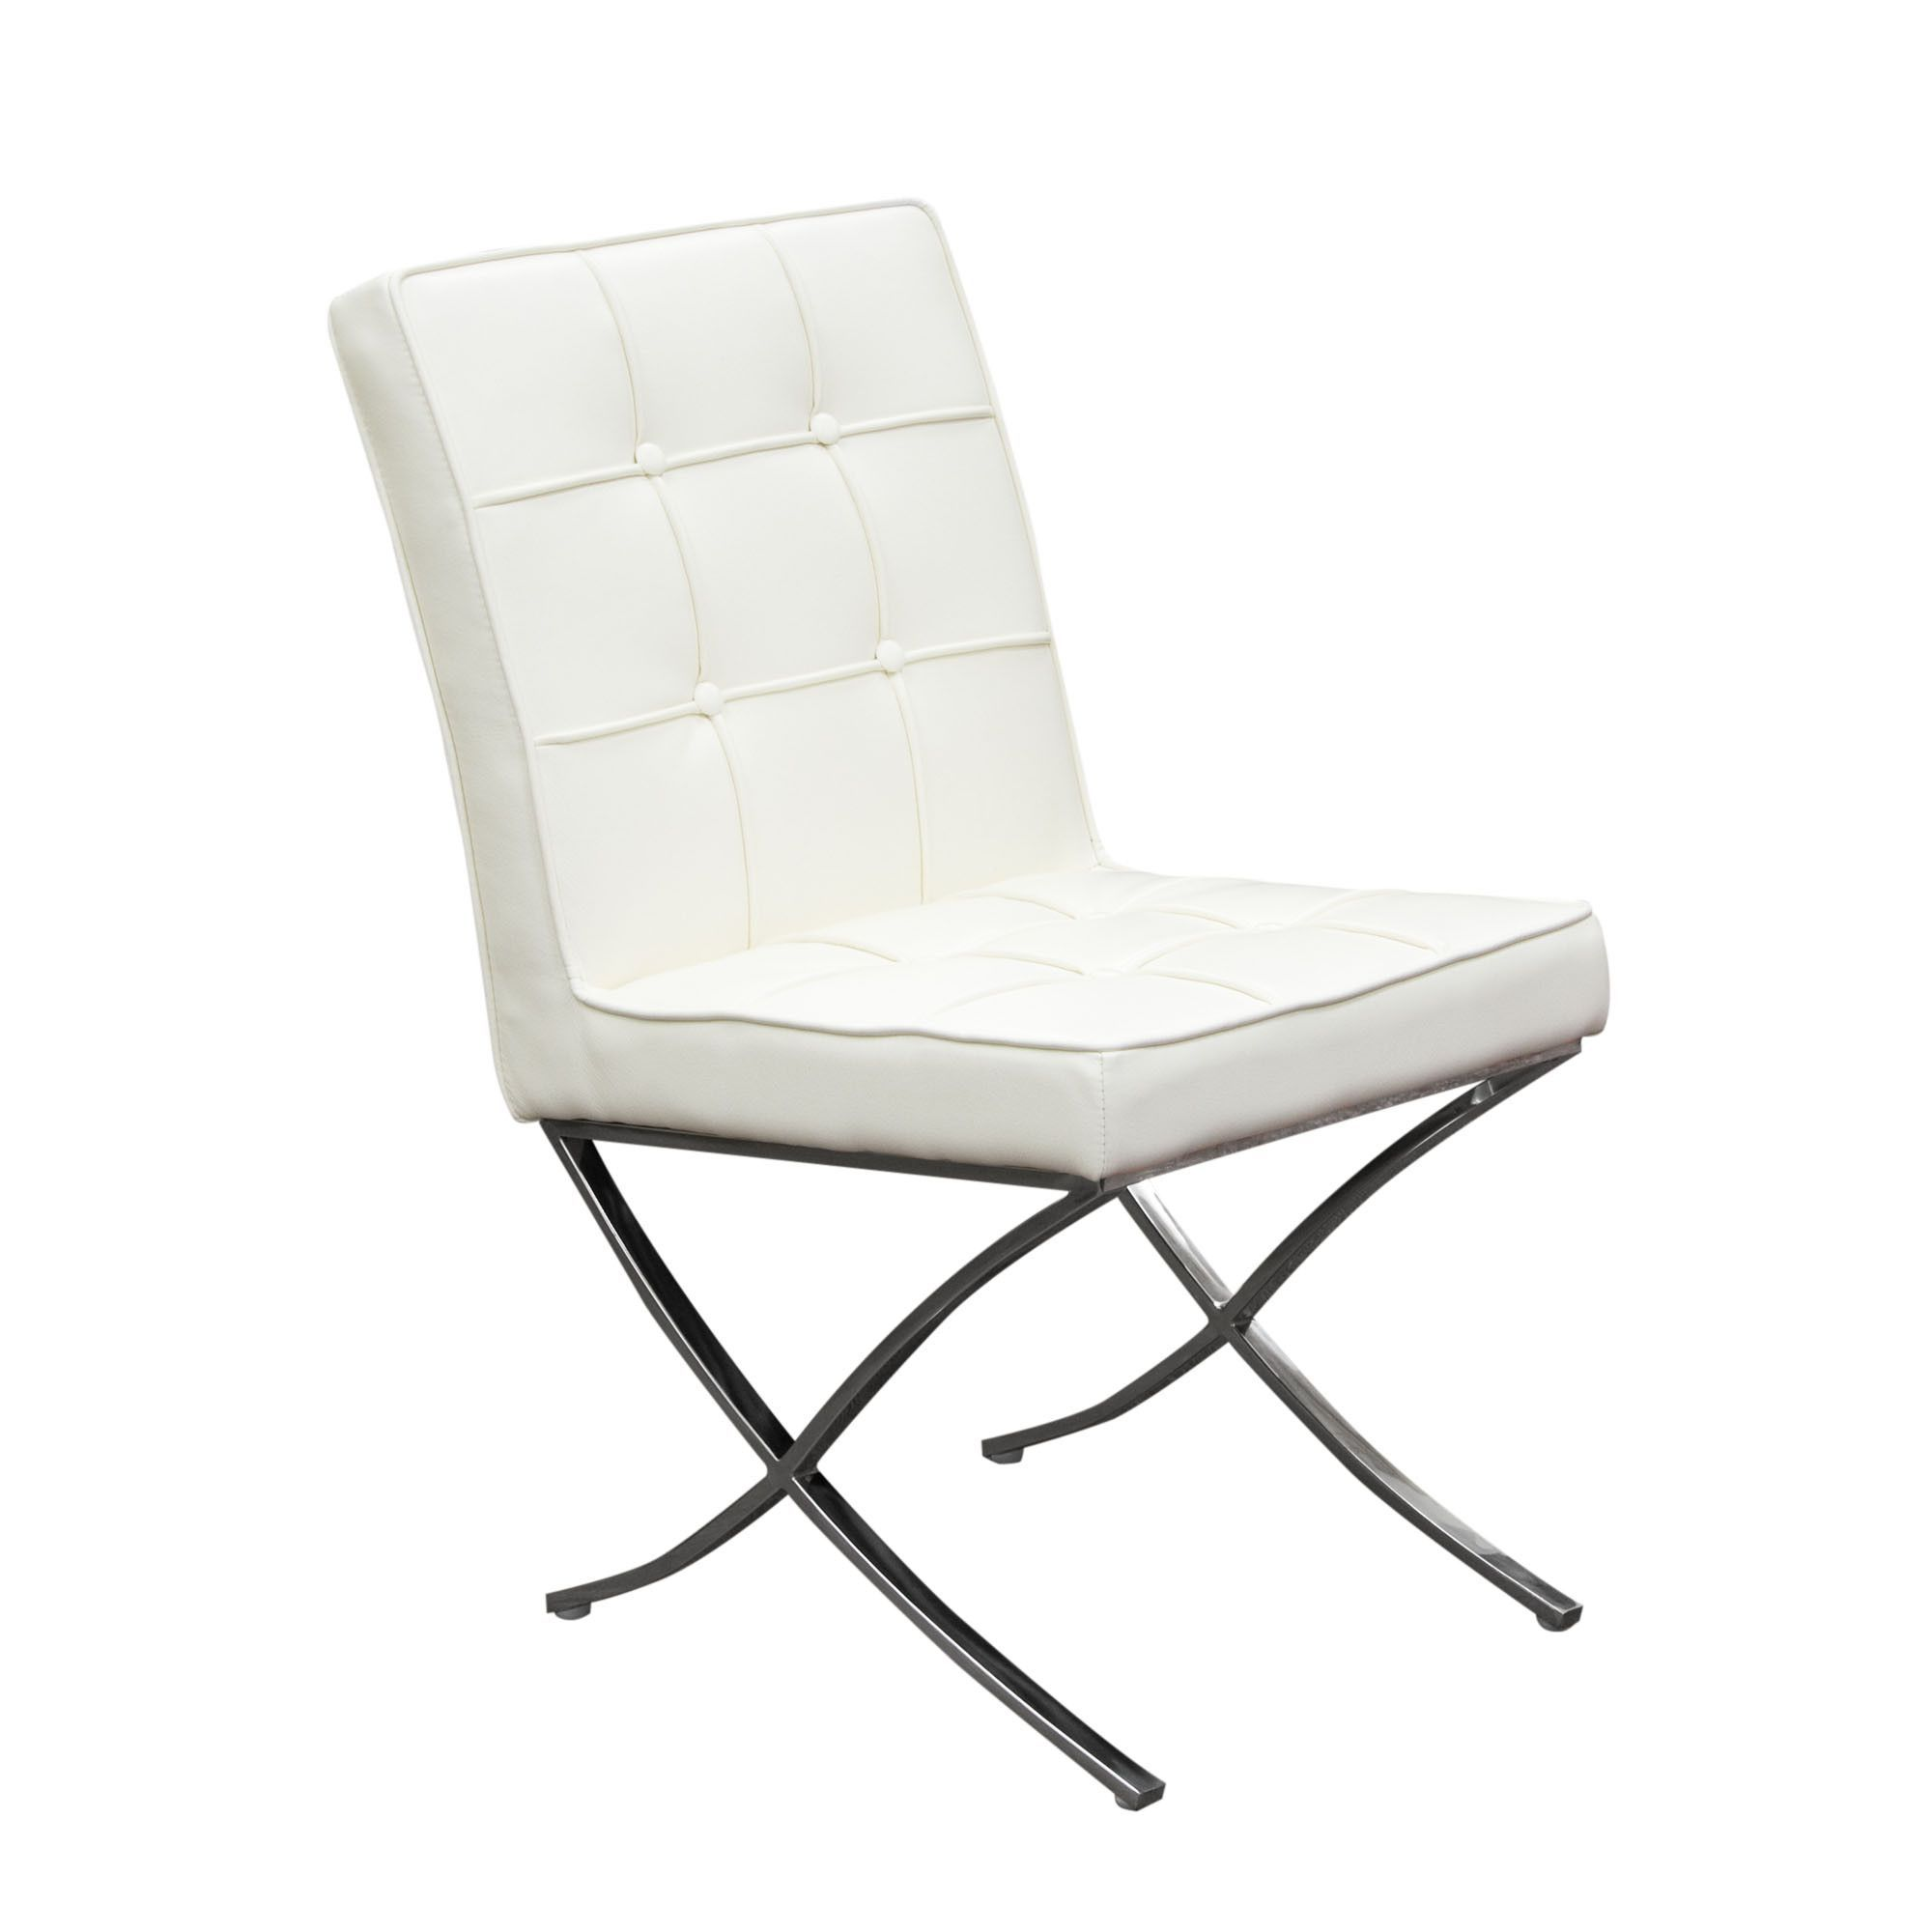 Cordoba Tufted Dining Chair with Stainless Steel Frame in White